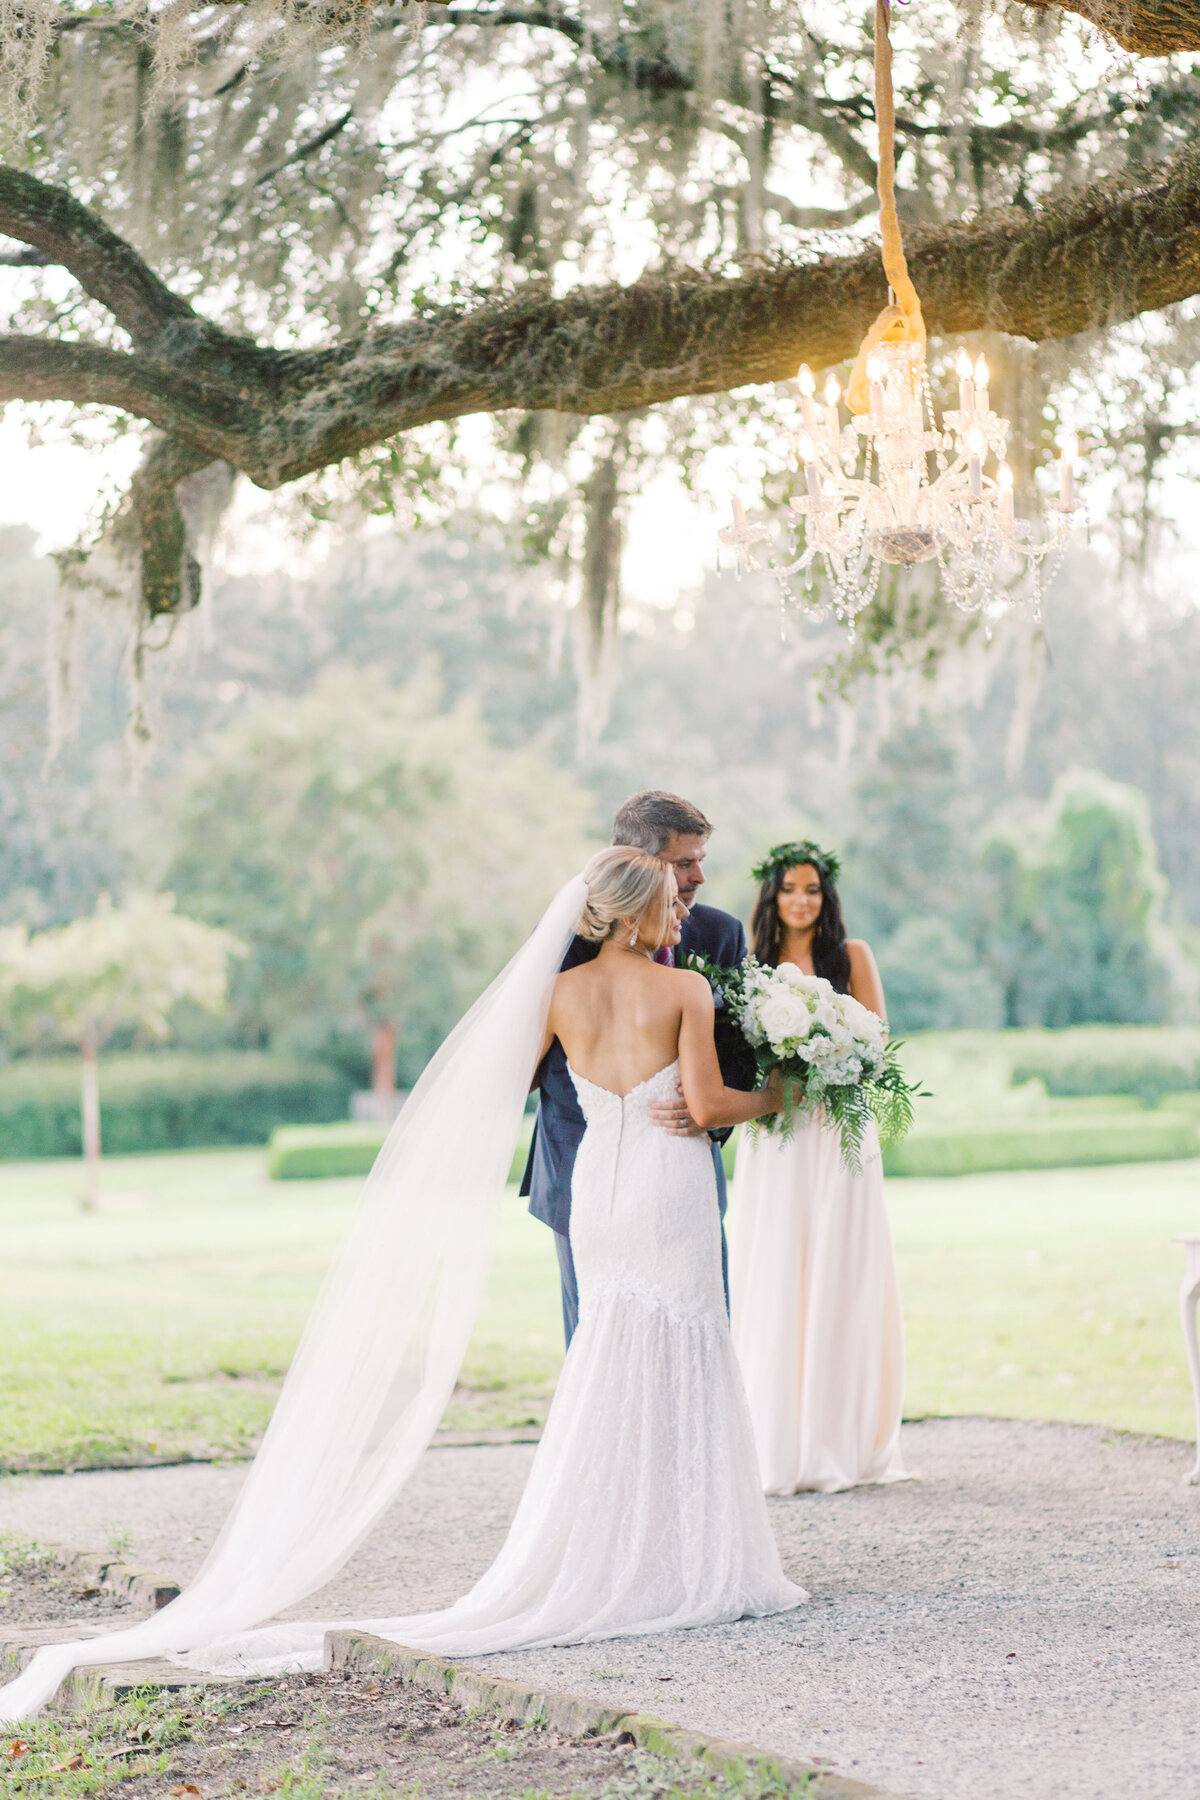 Melton_Wedding__Middleton_Place_Plantation_Charleston_South_Carolina_Jacksonville_Florida_Devon_Donnahoo_Photography__0599